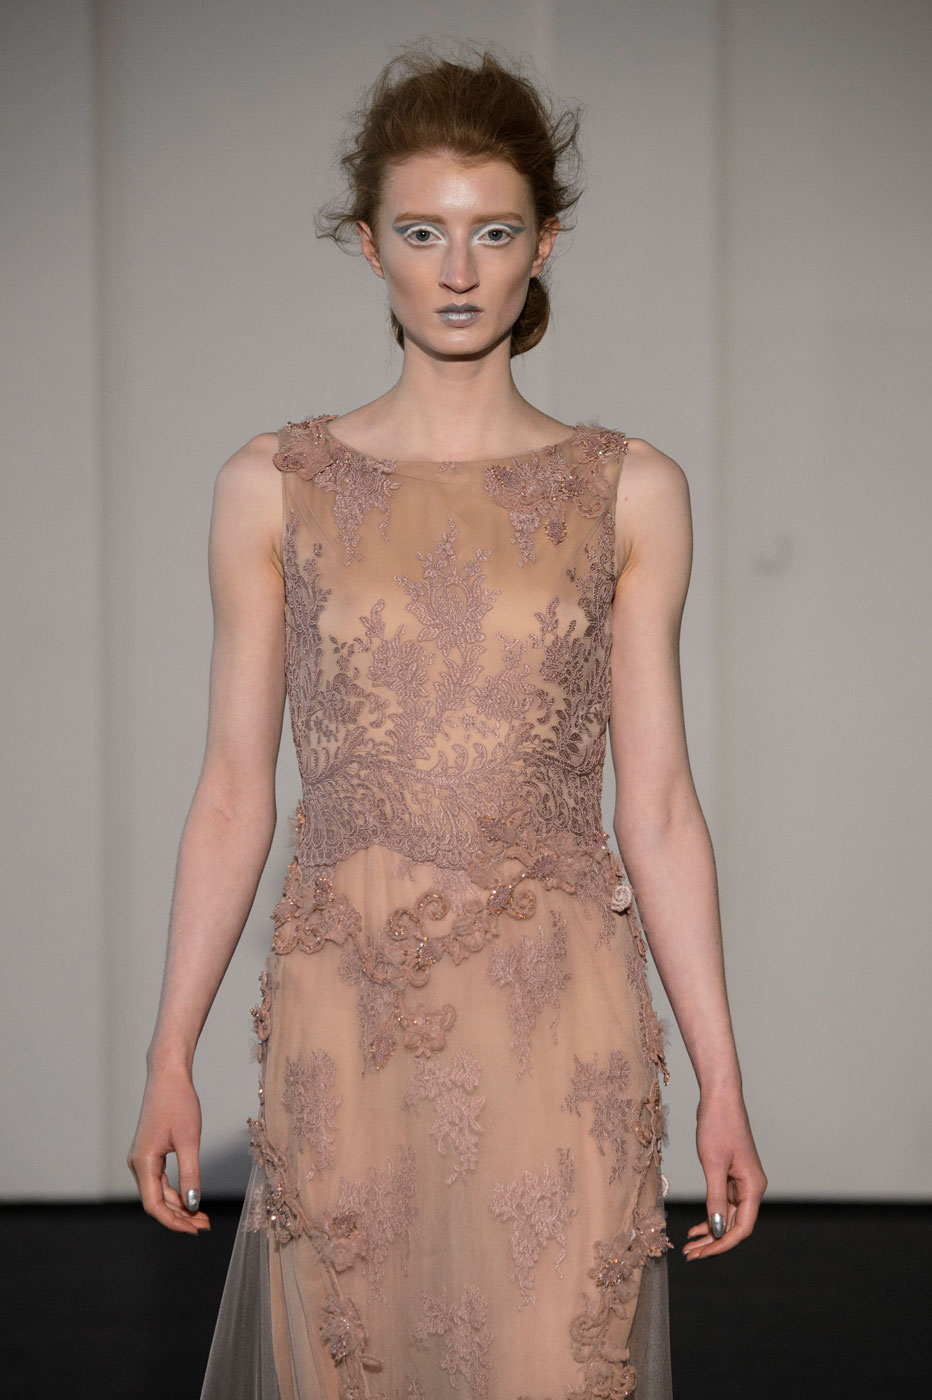 Busardi-fashion-runway-show-haute-couture-paris-spring-2015-the-impression-47